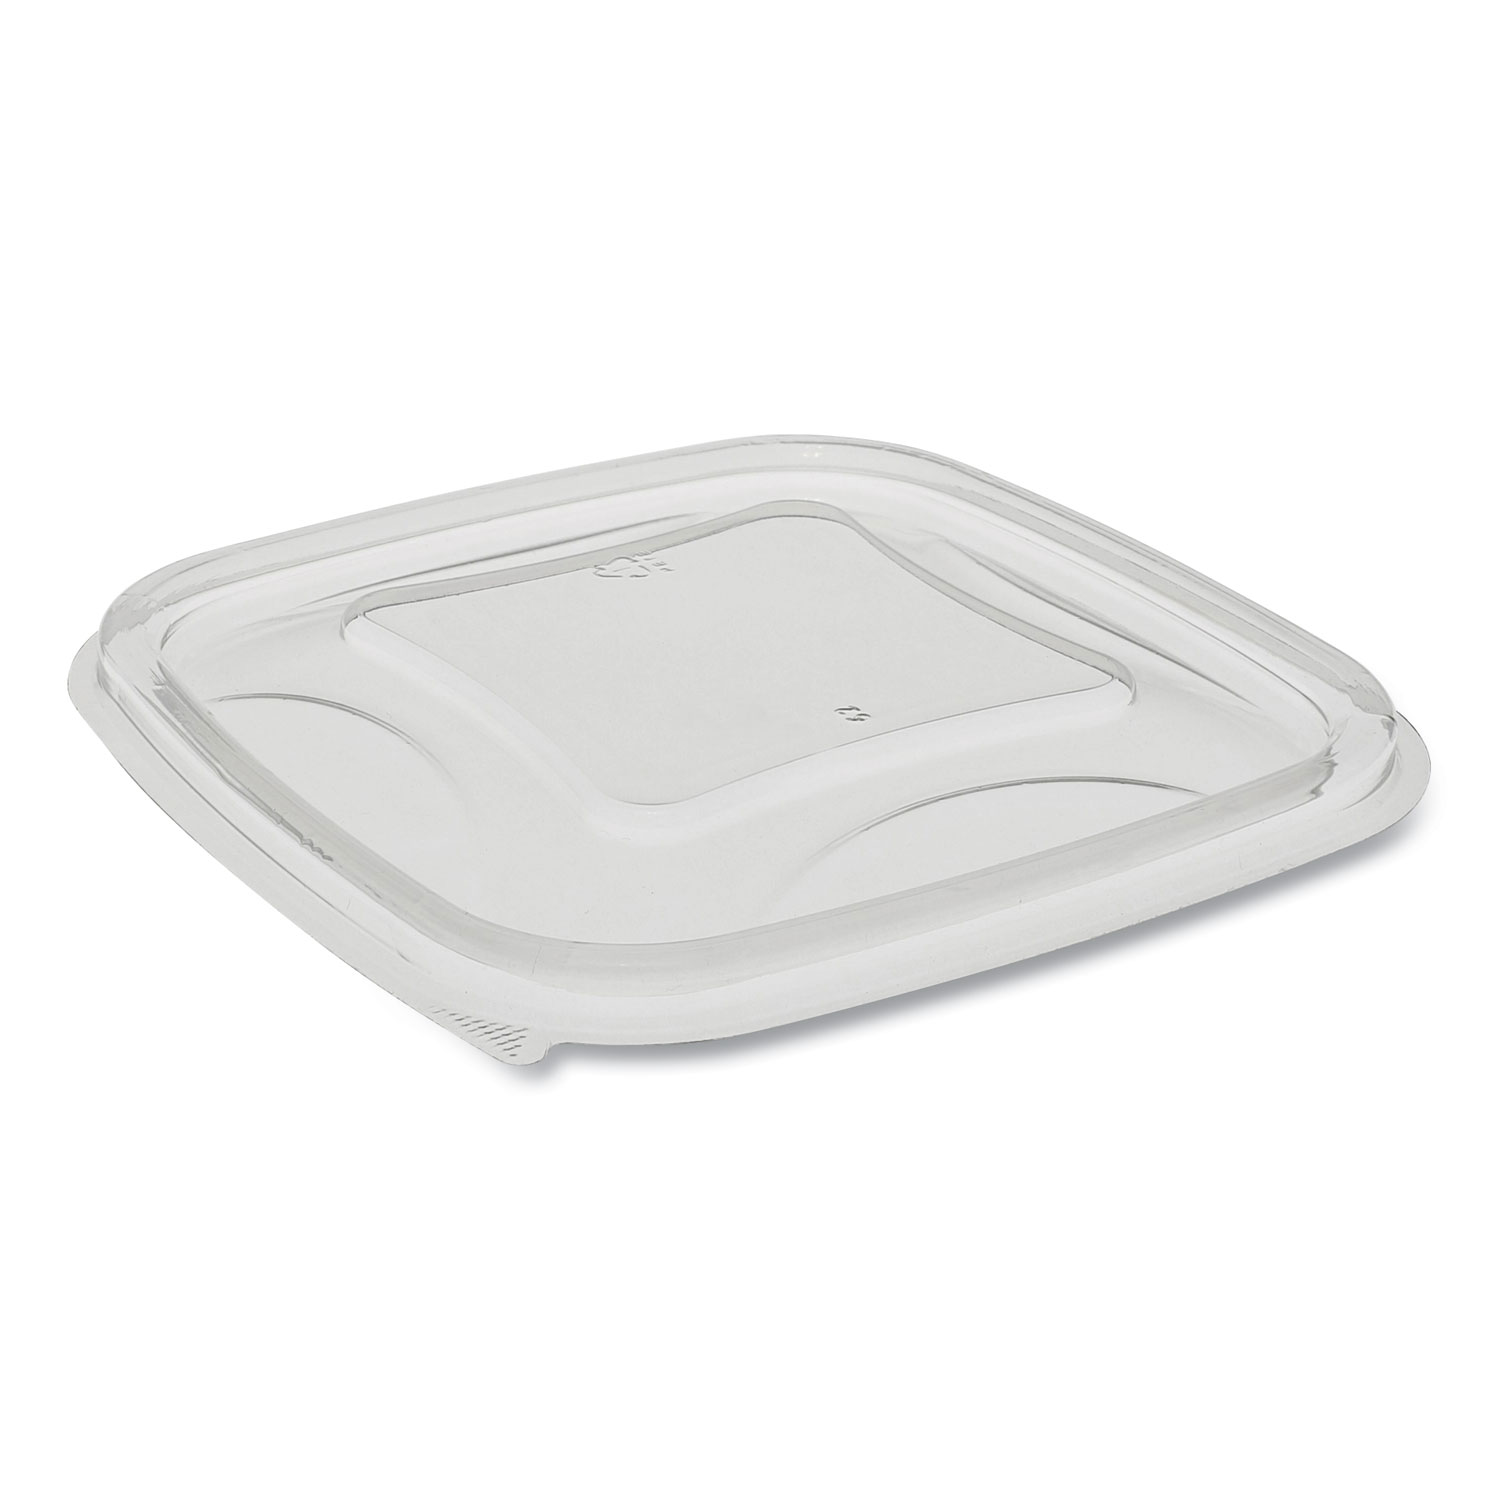 Pactiv EarthChoice Recycled Plastic Square Flat Lids, 5.5 x 5.5 x 0.75, Clear, 504/Carton